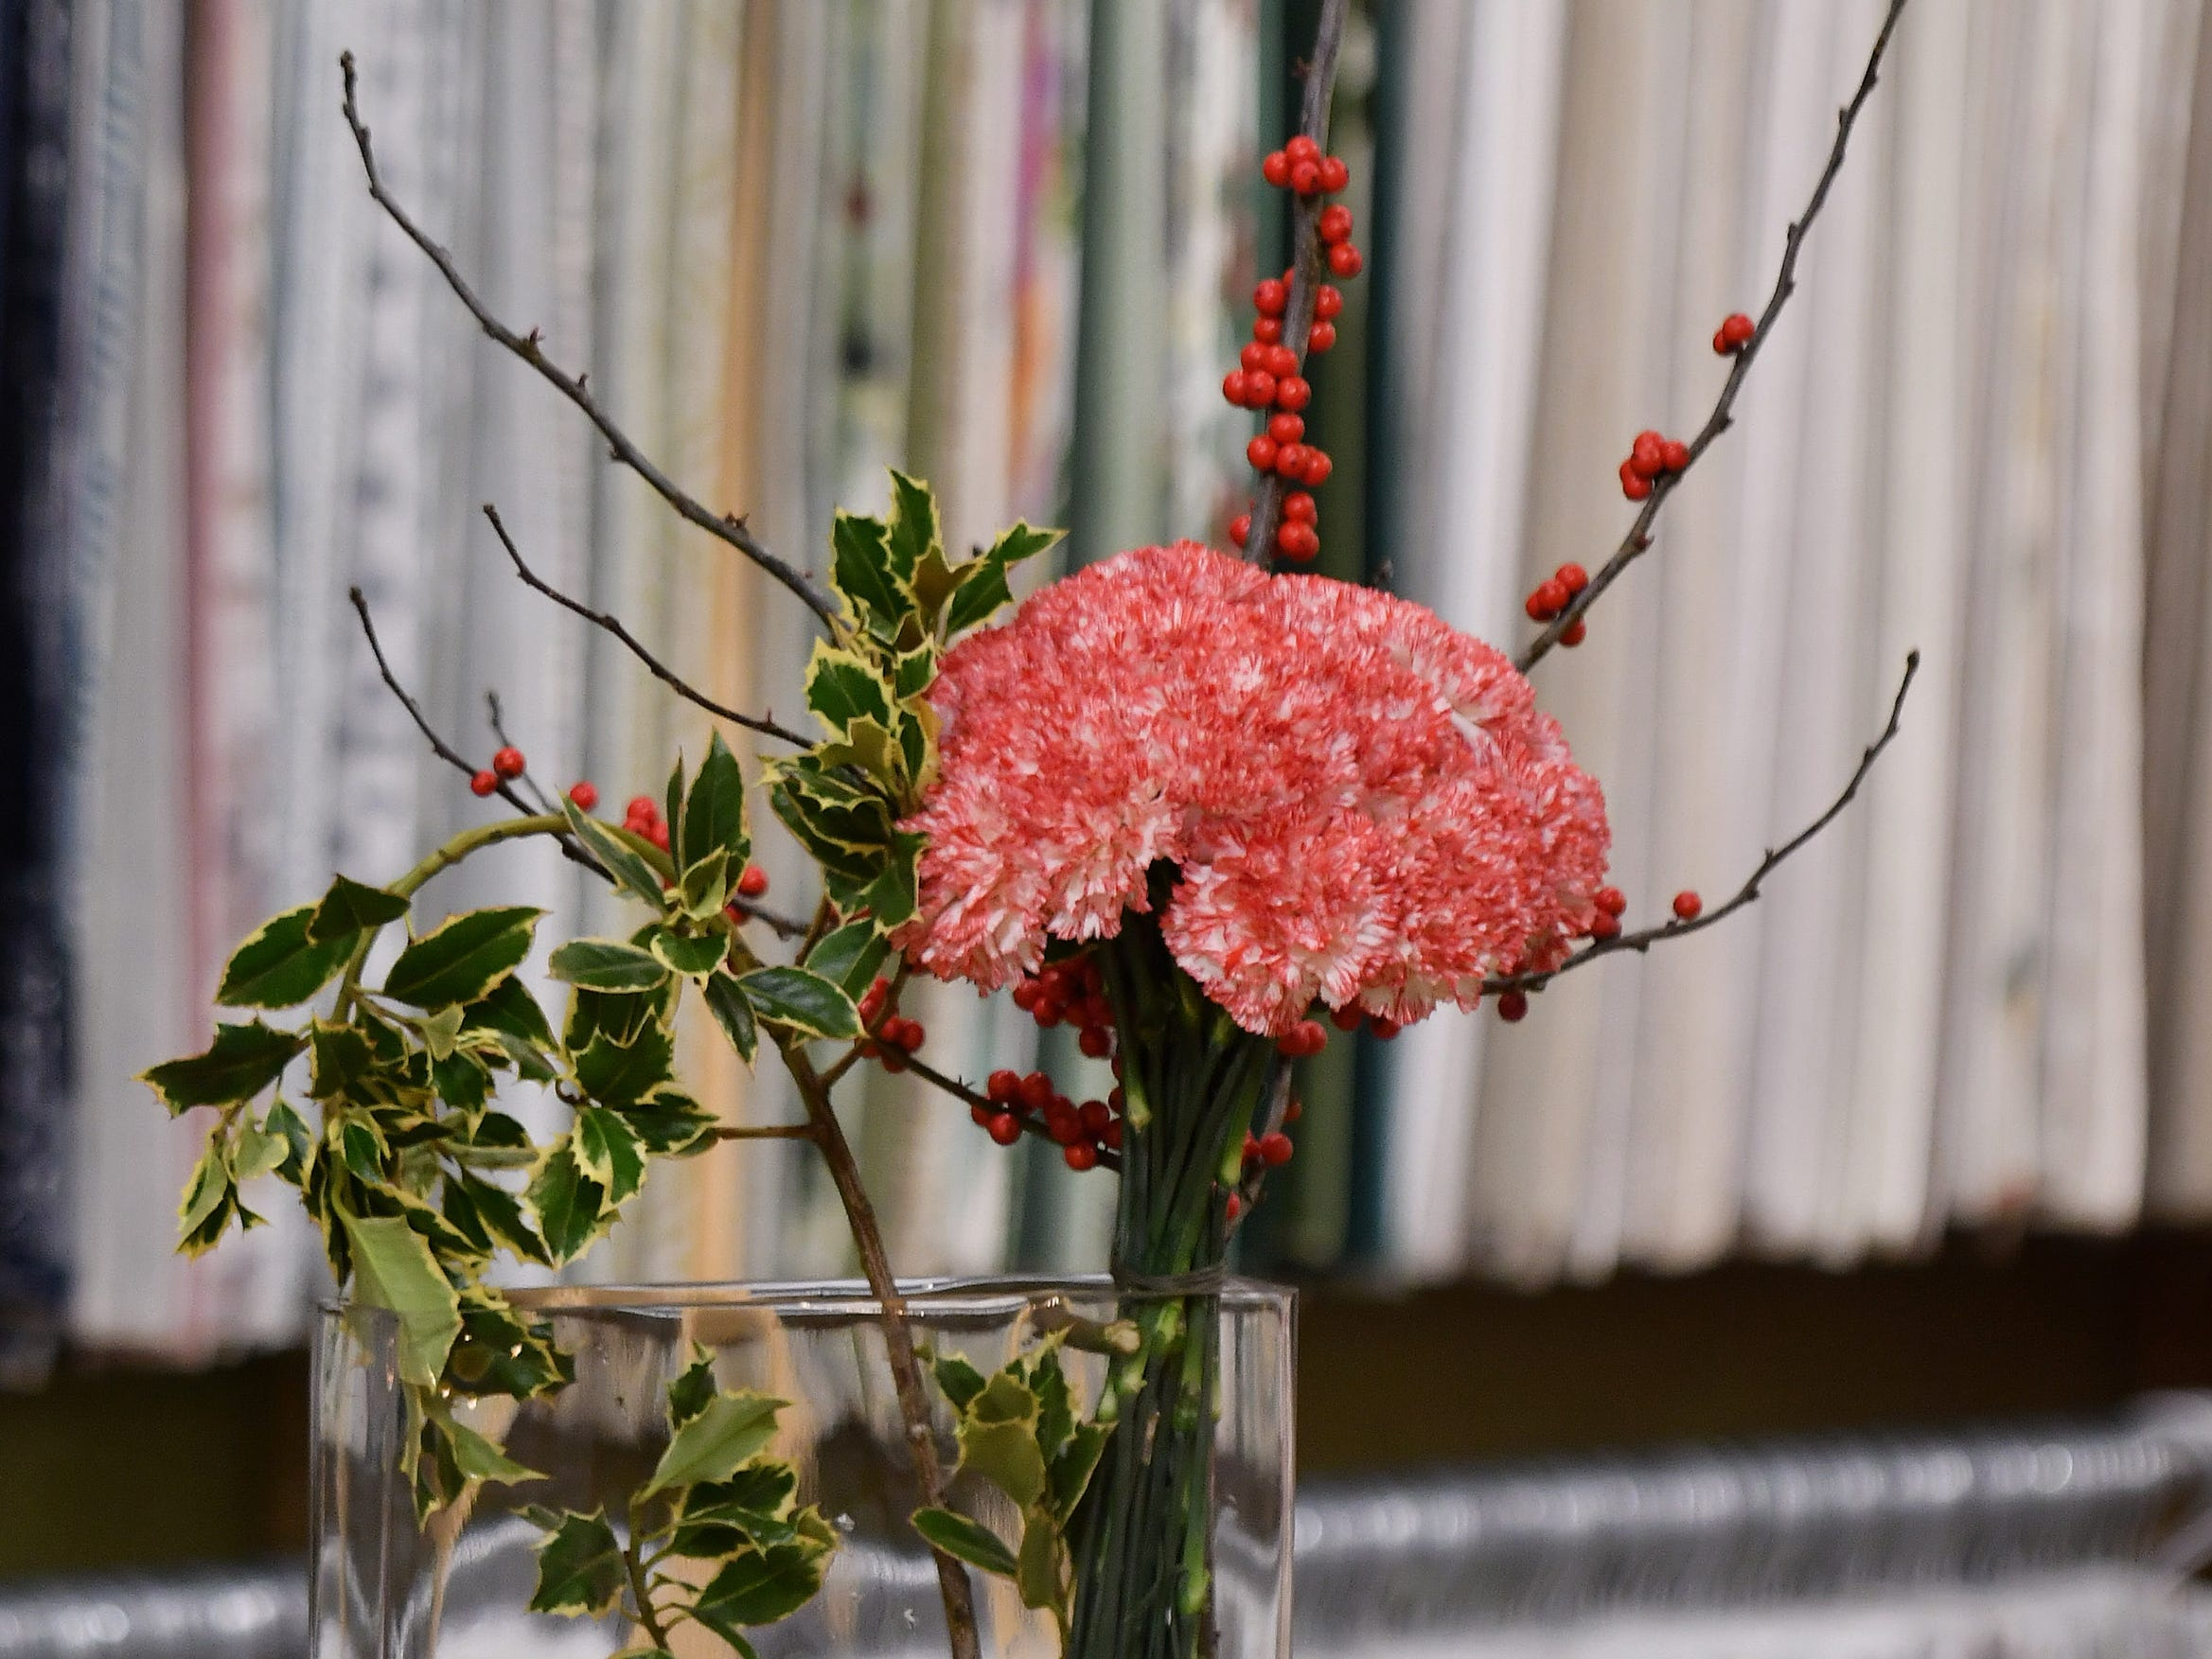 Jeffrey Jucewicz of Jeffrey Floral Architecture shows how simple and elegant a centerpiece can be made, this one with carnations and holly.